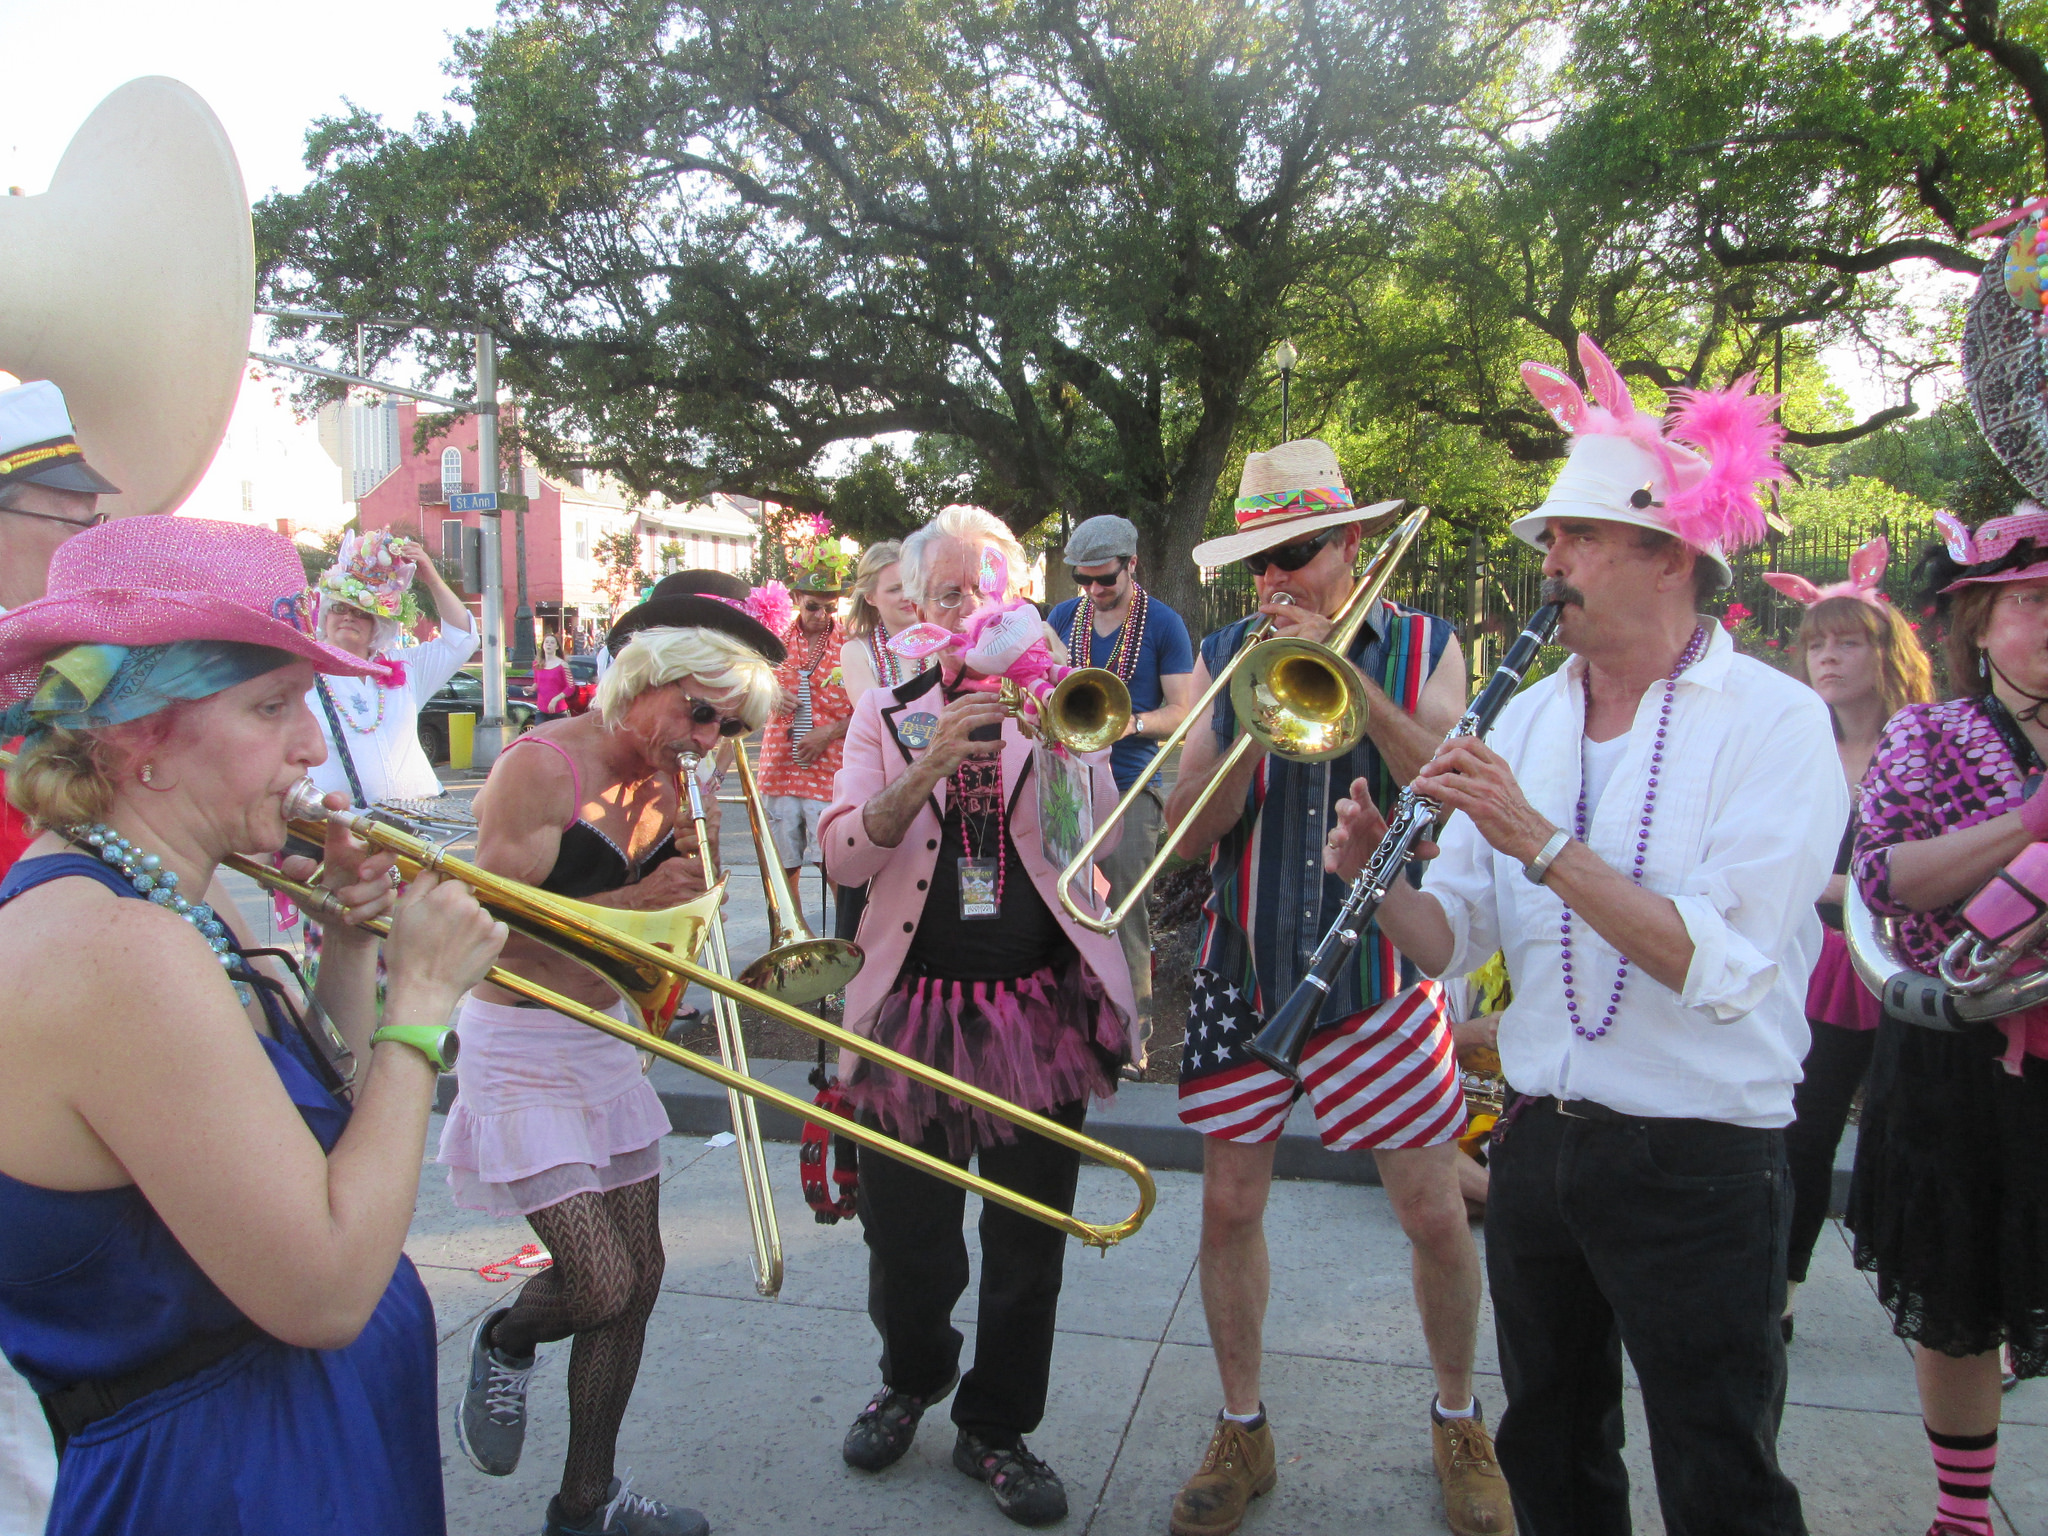 Musicians play during the Gay Easter Parade. (Photo via Flickr user Infrogmation)